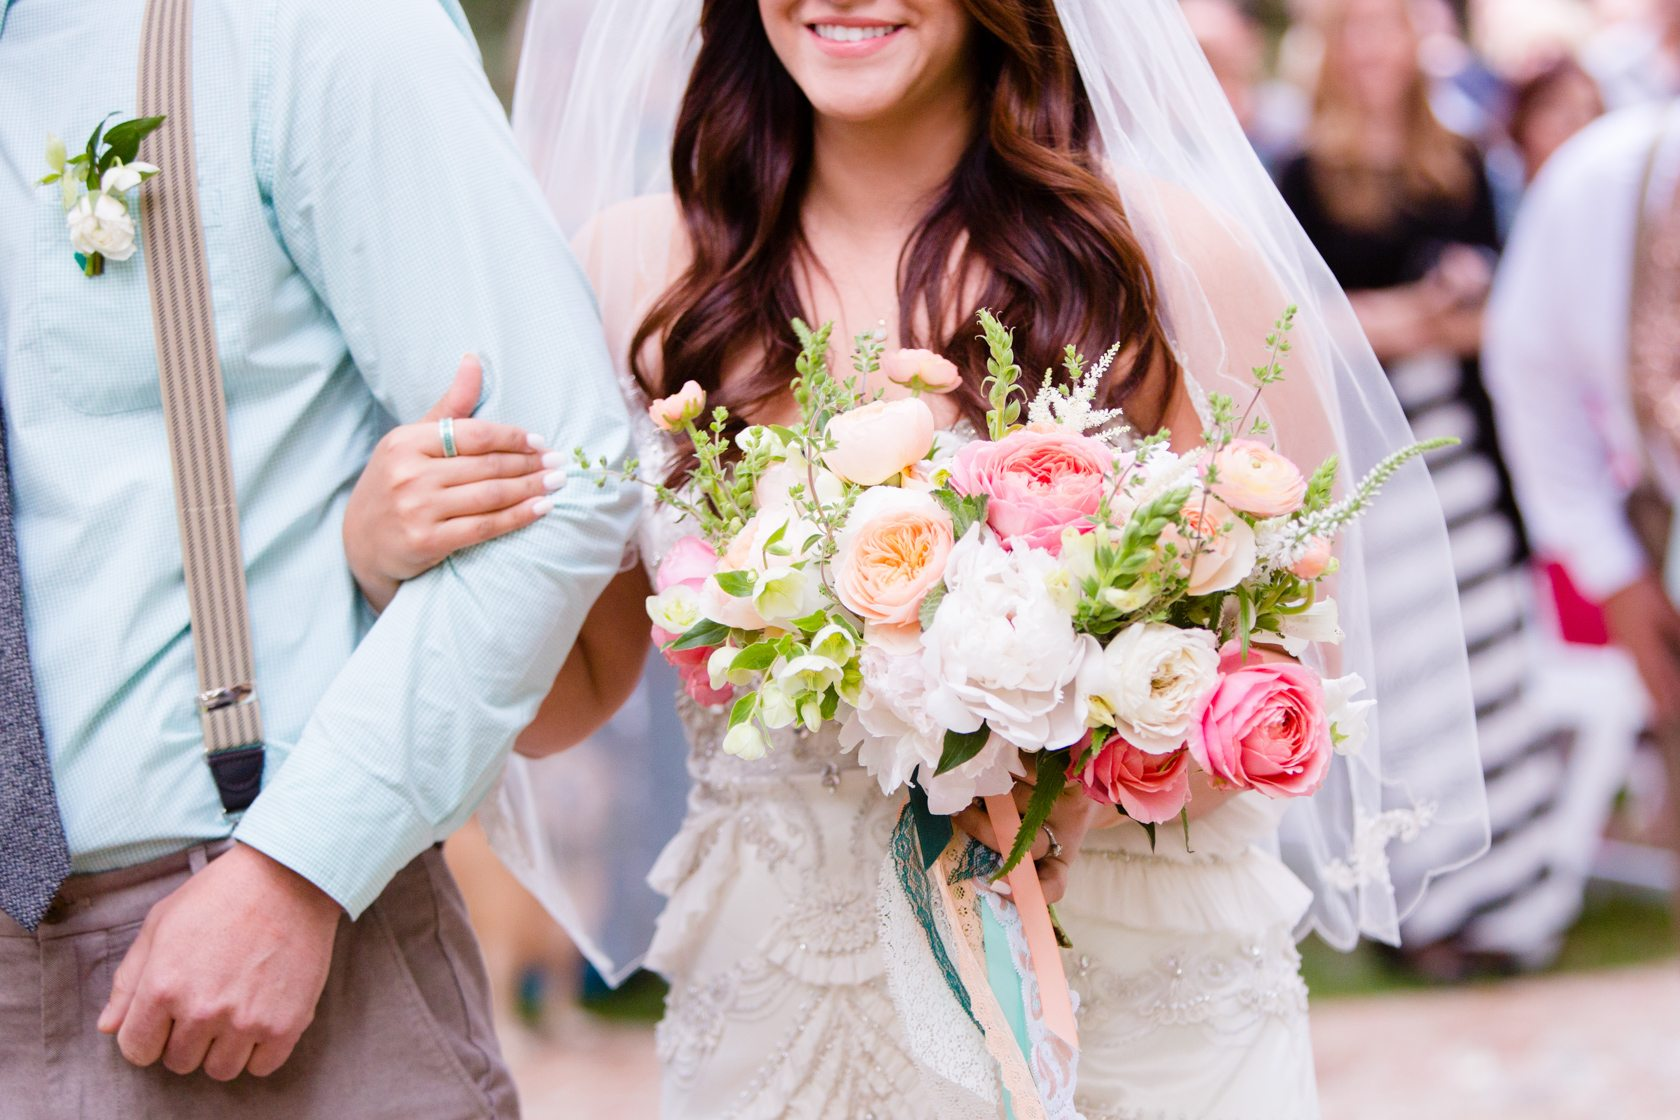 The_Printed_Palette_Wedding_at_Calamigos_Ranch_055.jpg